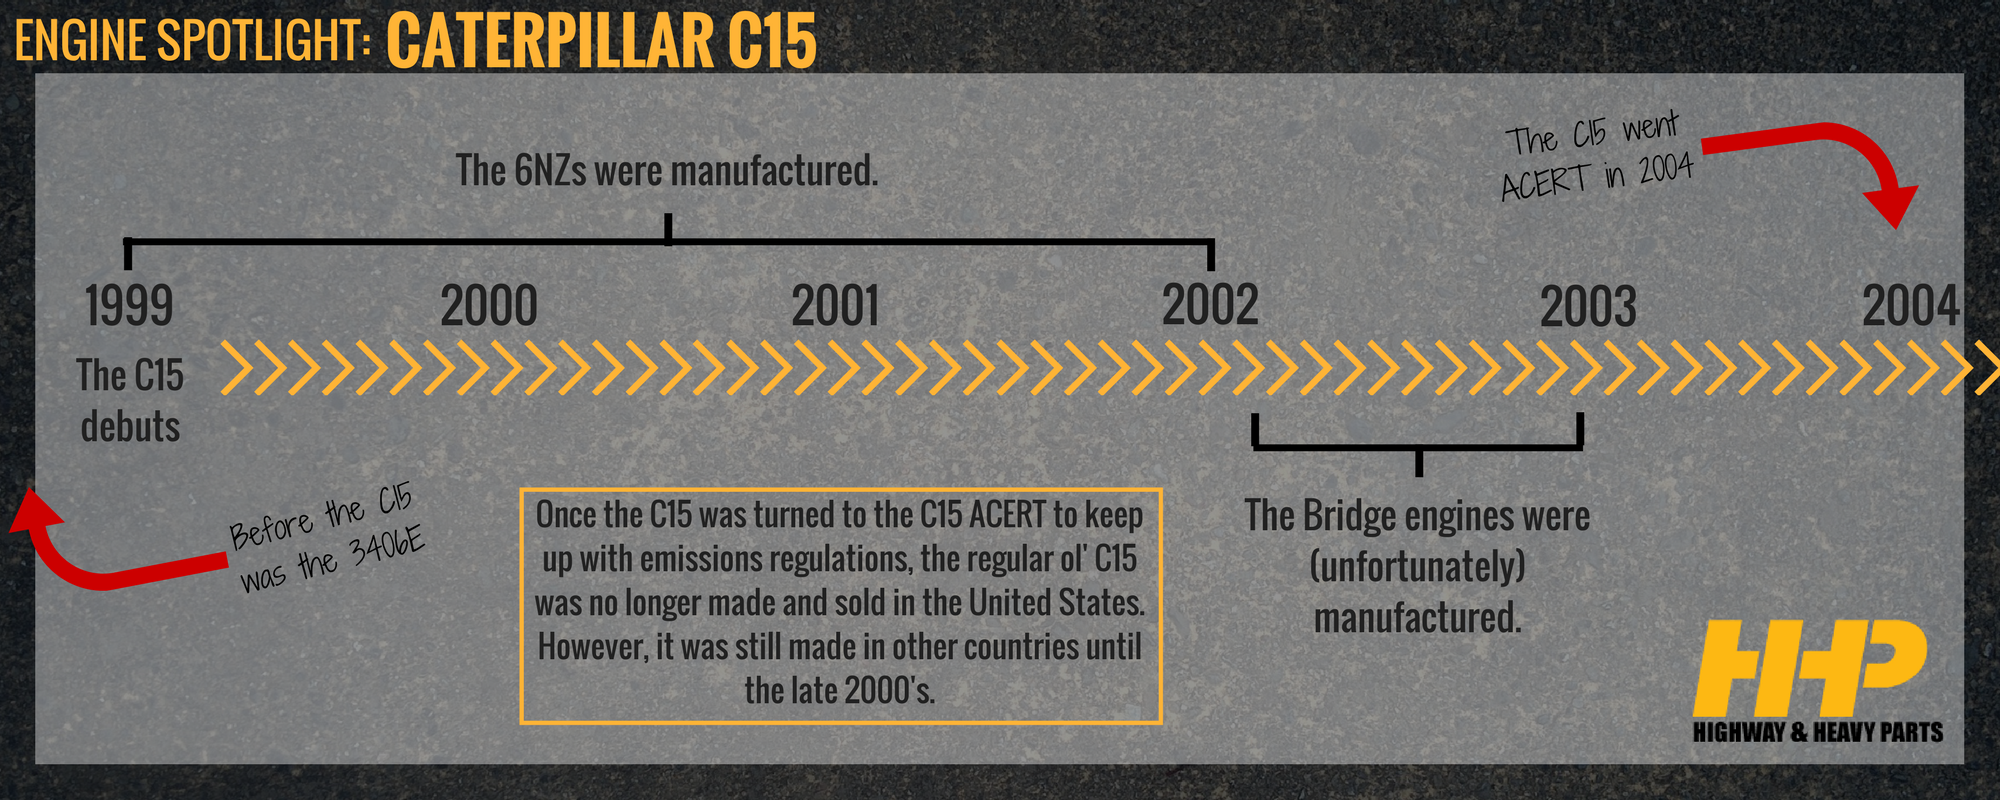 C15 Engine Timeline | Highway & Heavy Parts